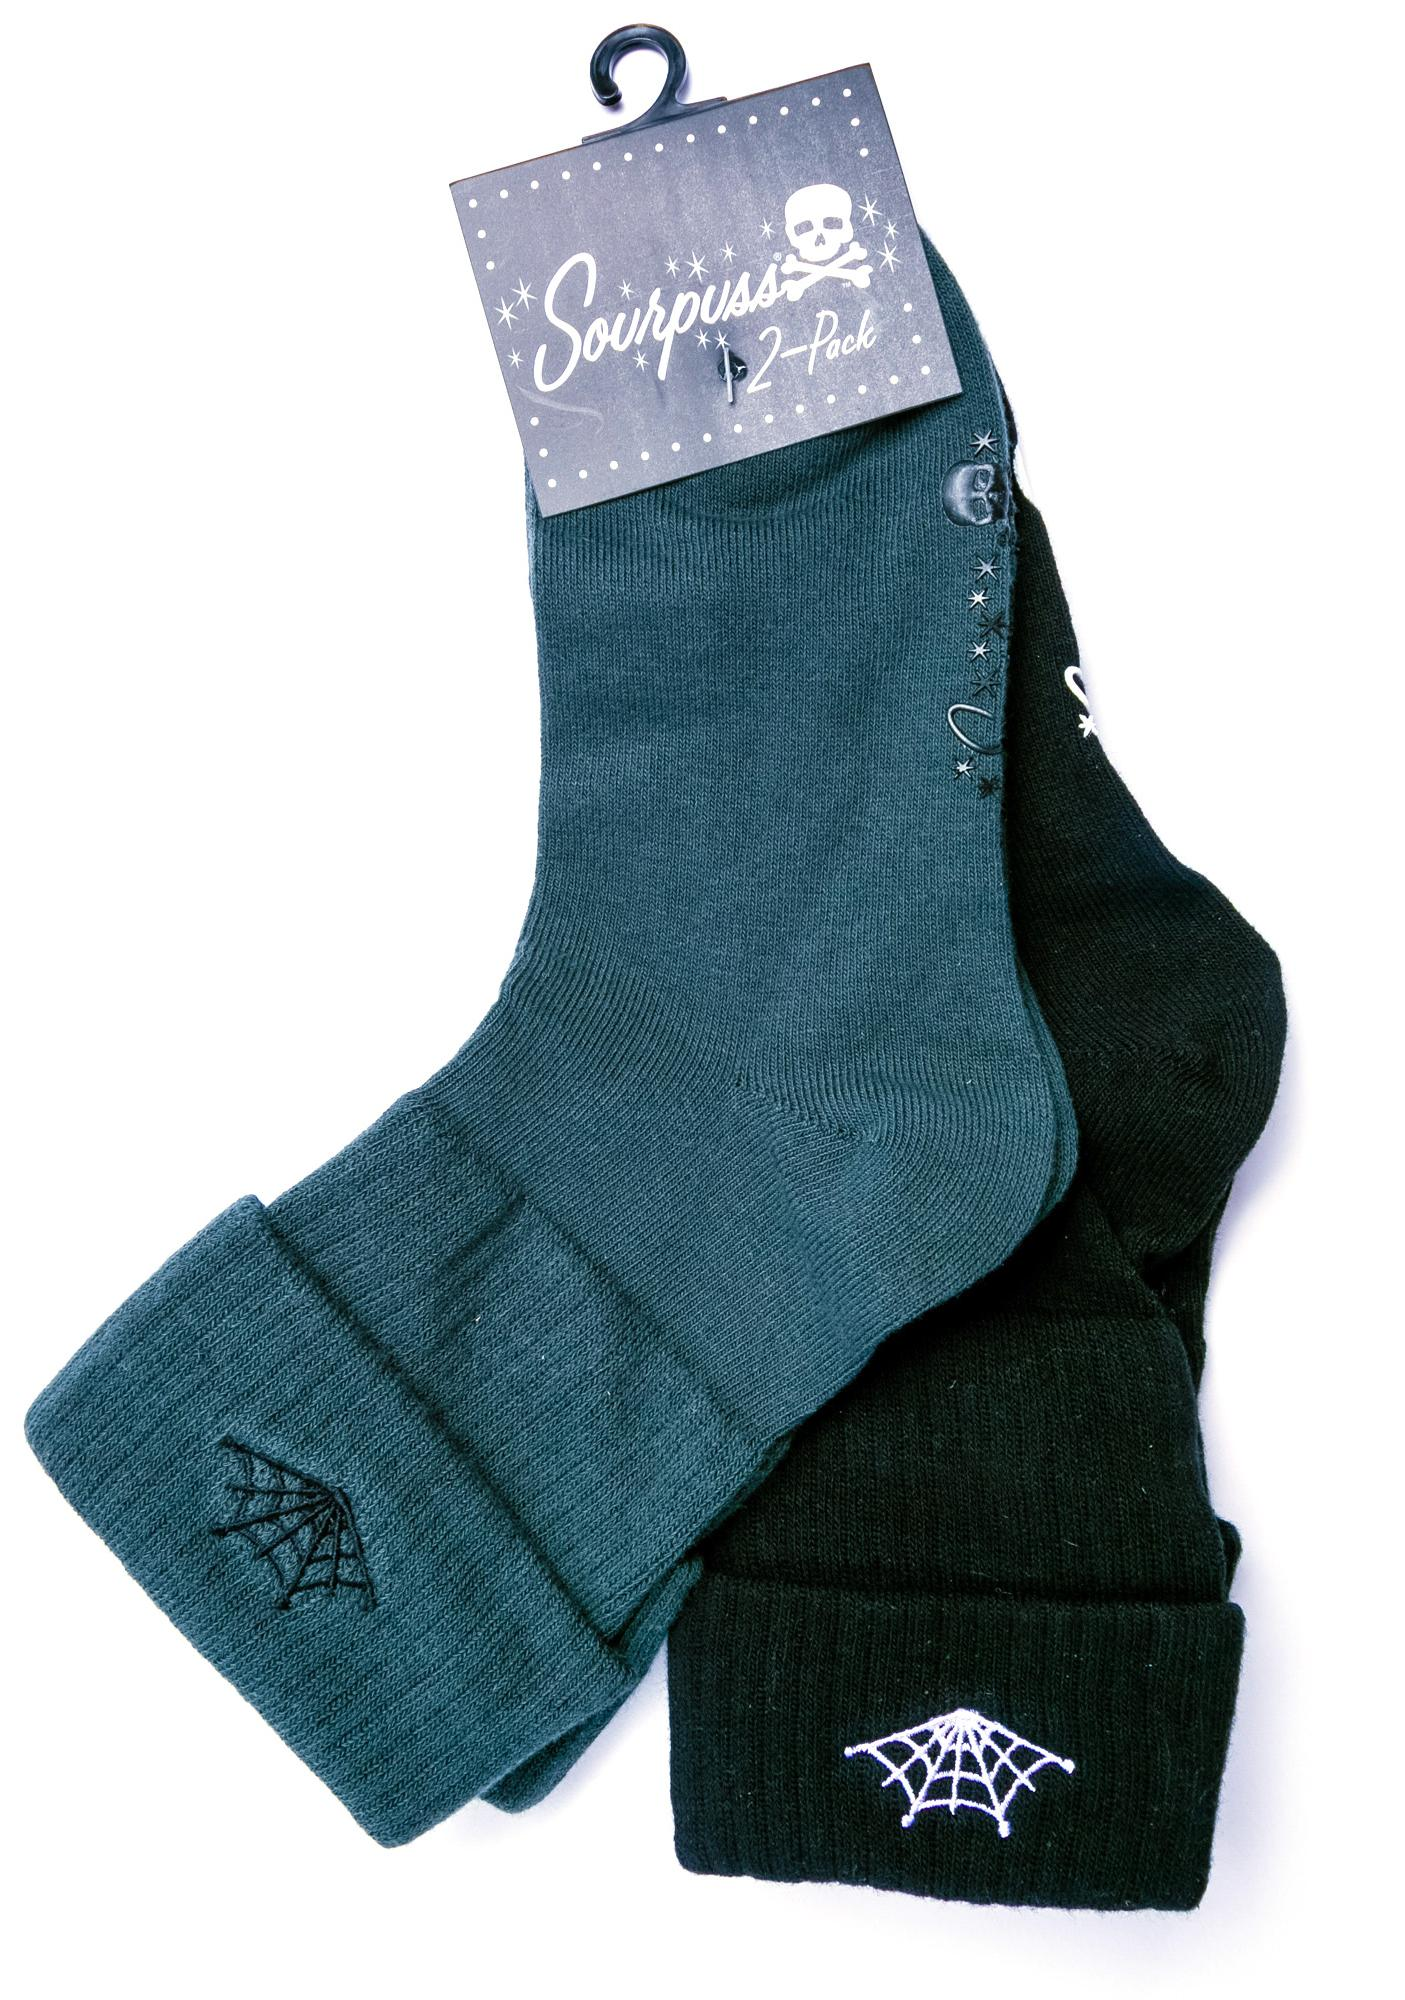 Sourpuss Clothing Web Socks Set